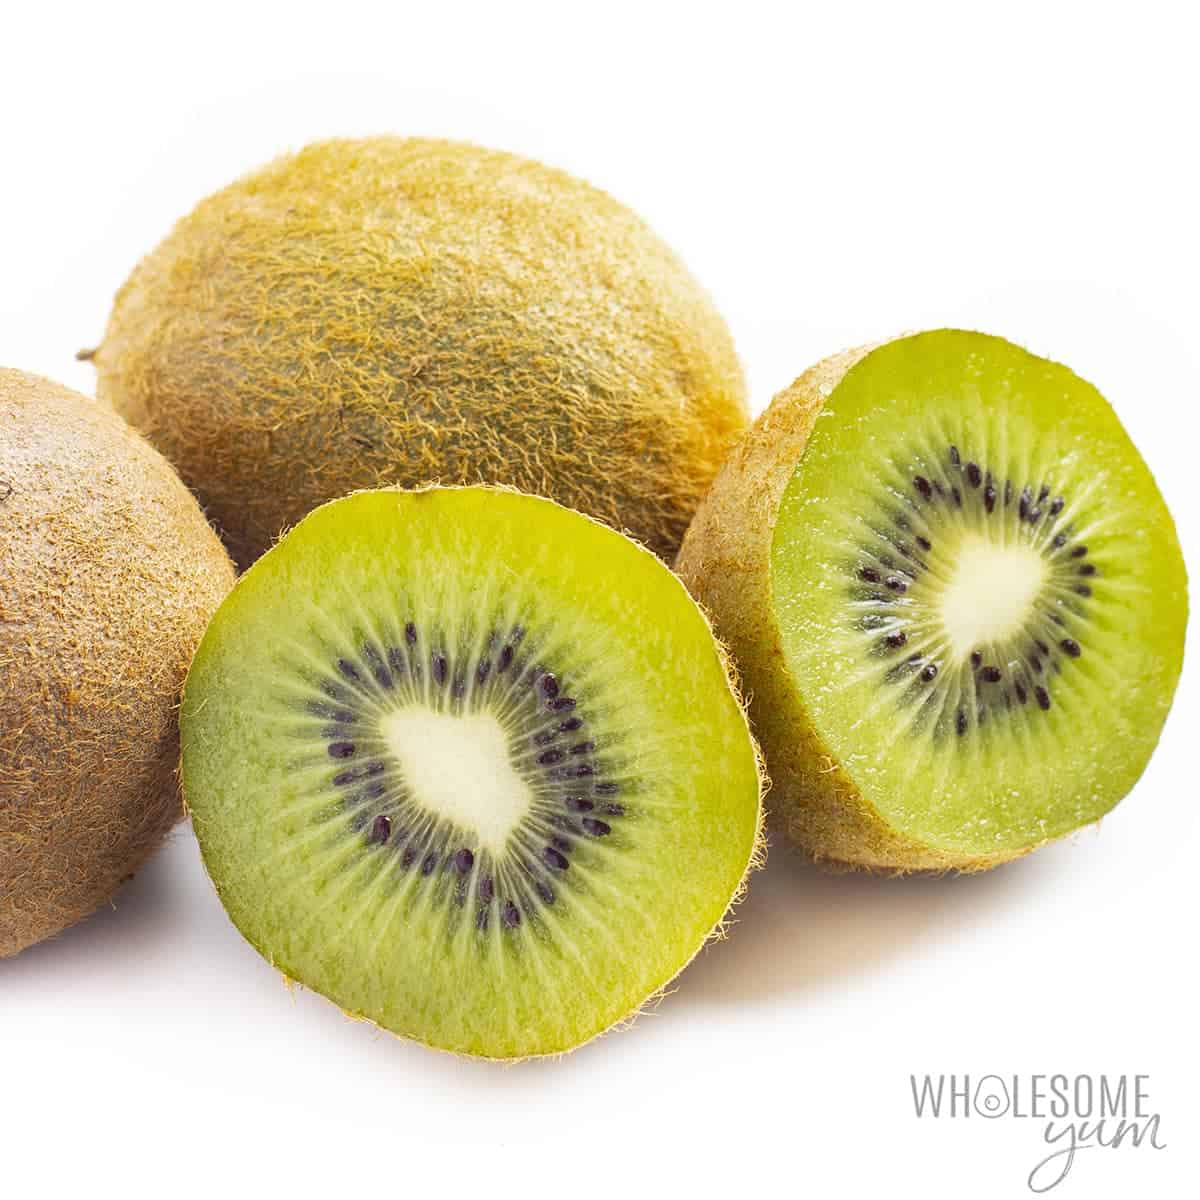 Are carbs in kiwi high? This fresh kiwi can be low carb in moderation.